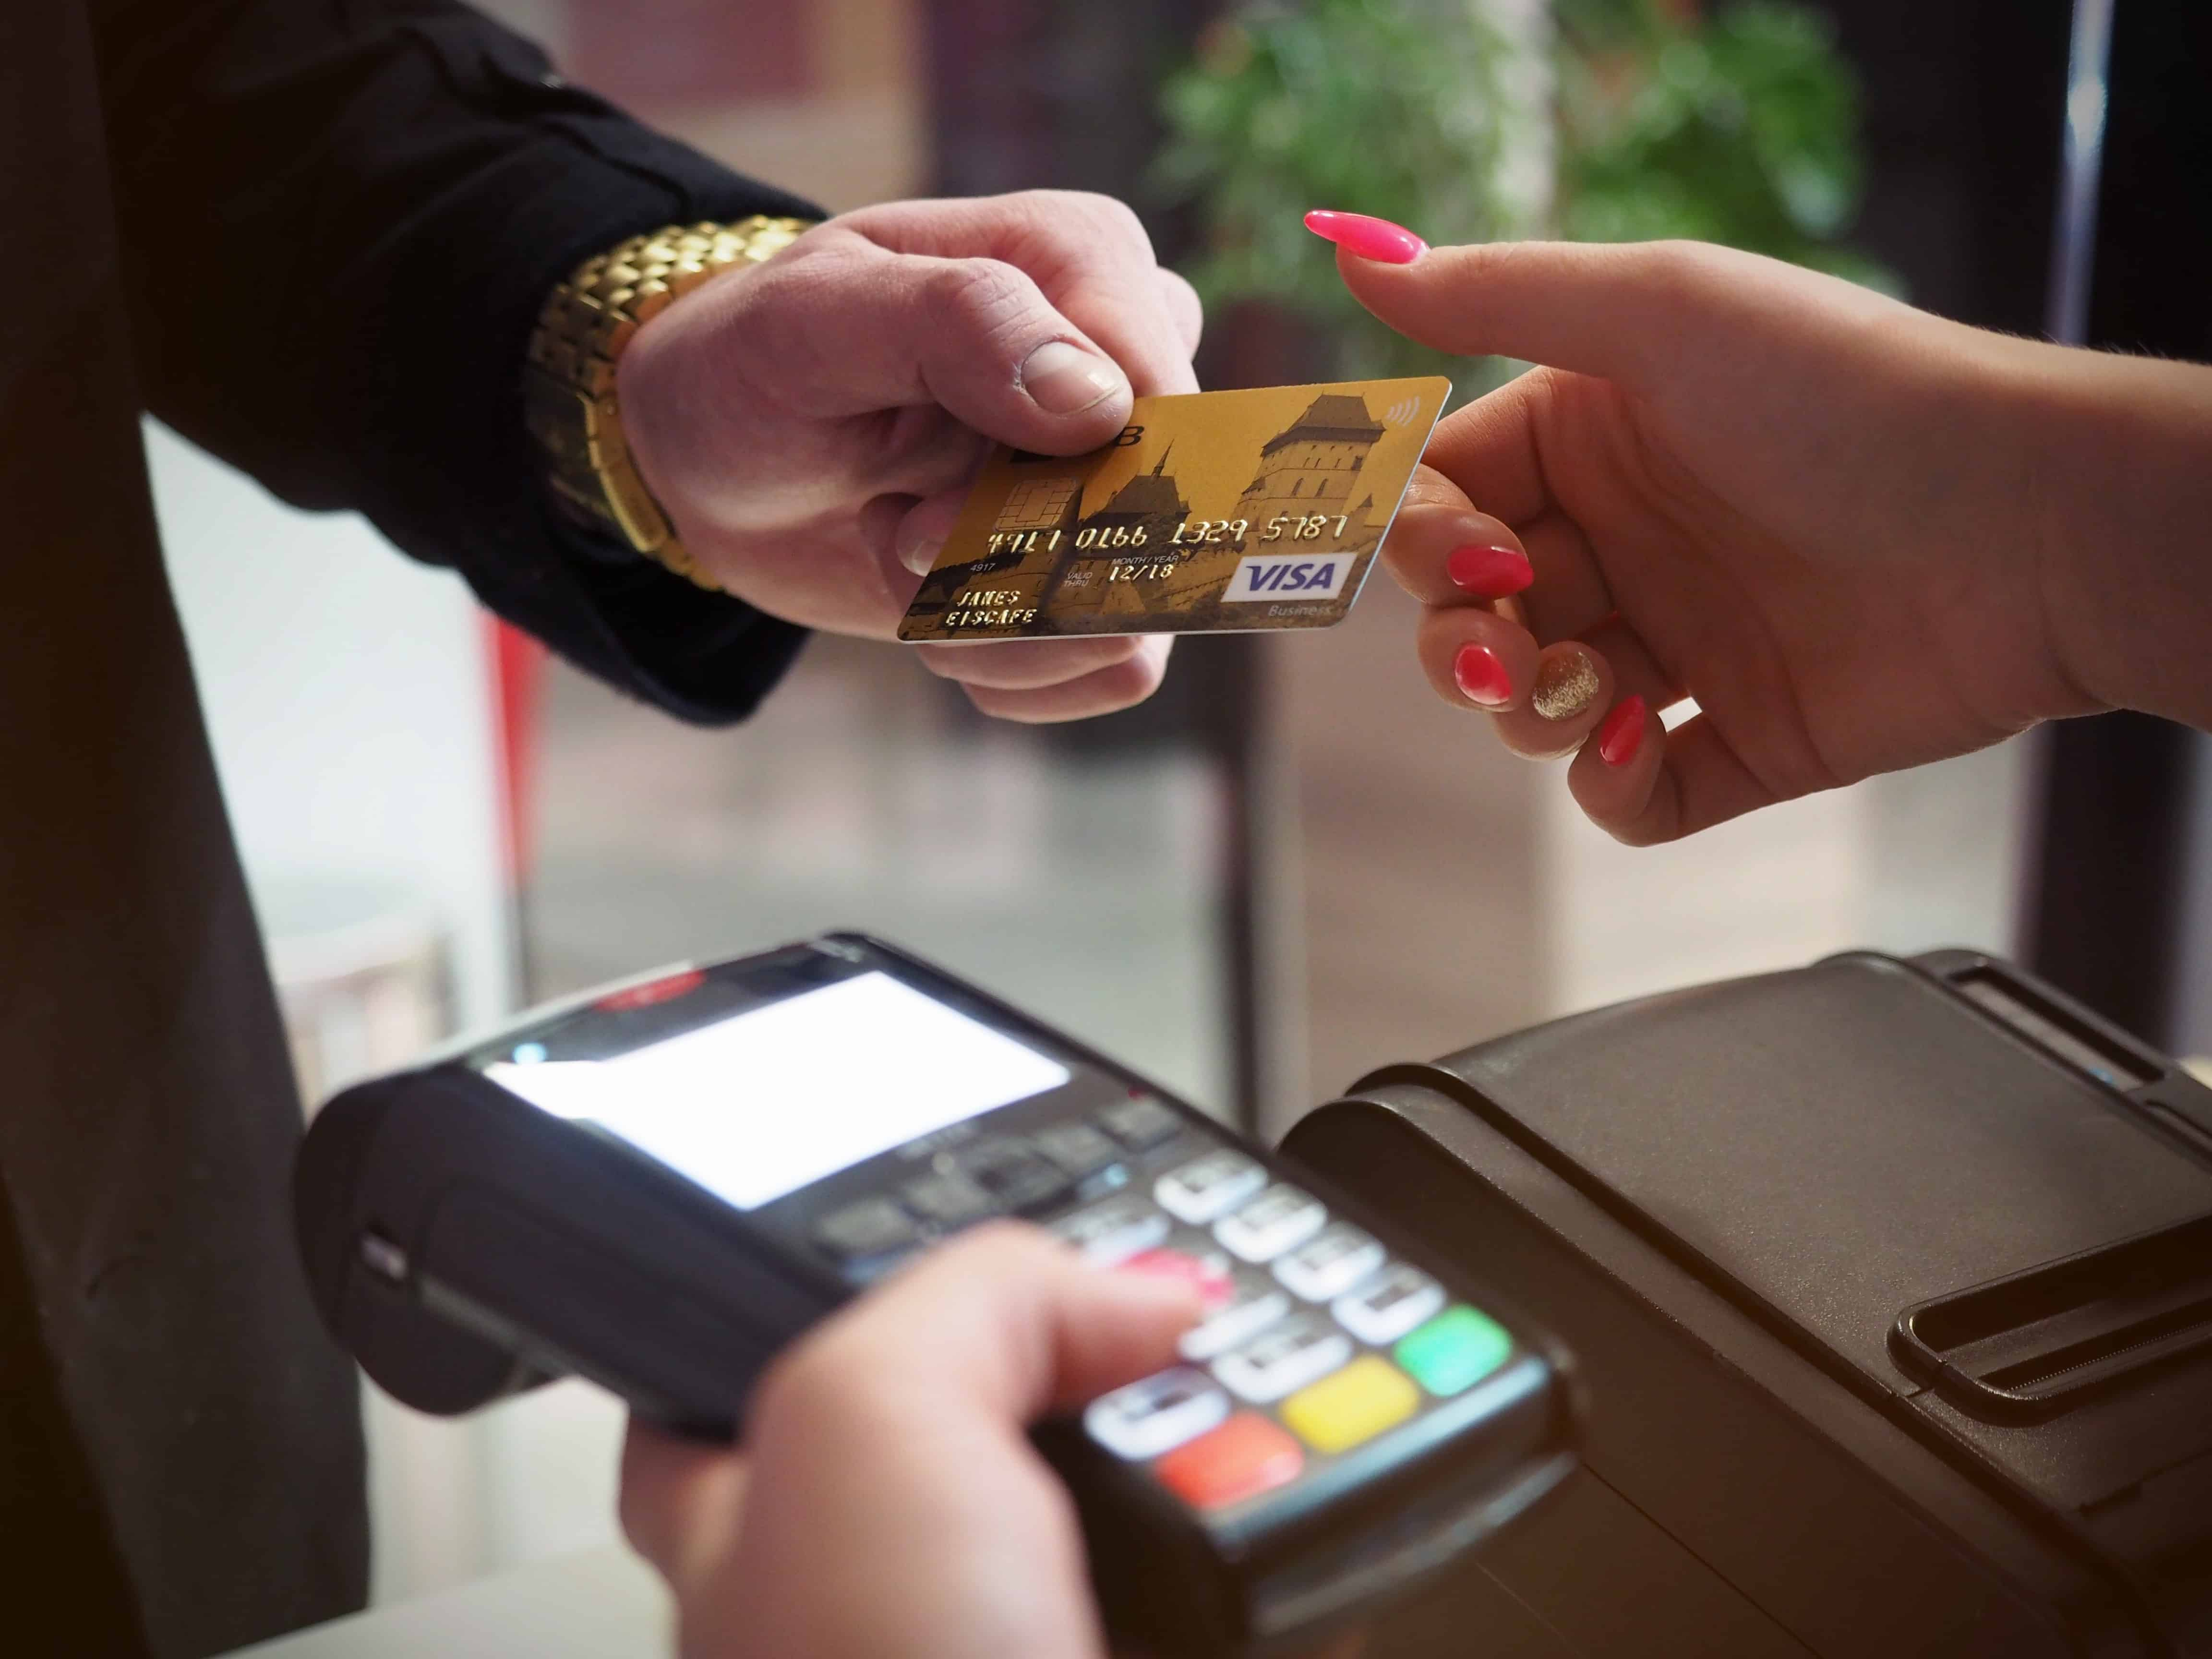 Consider the pros and cons of credit cards before using them.